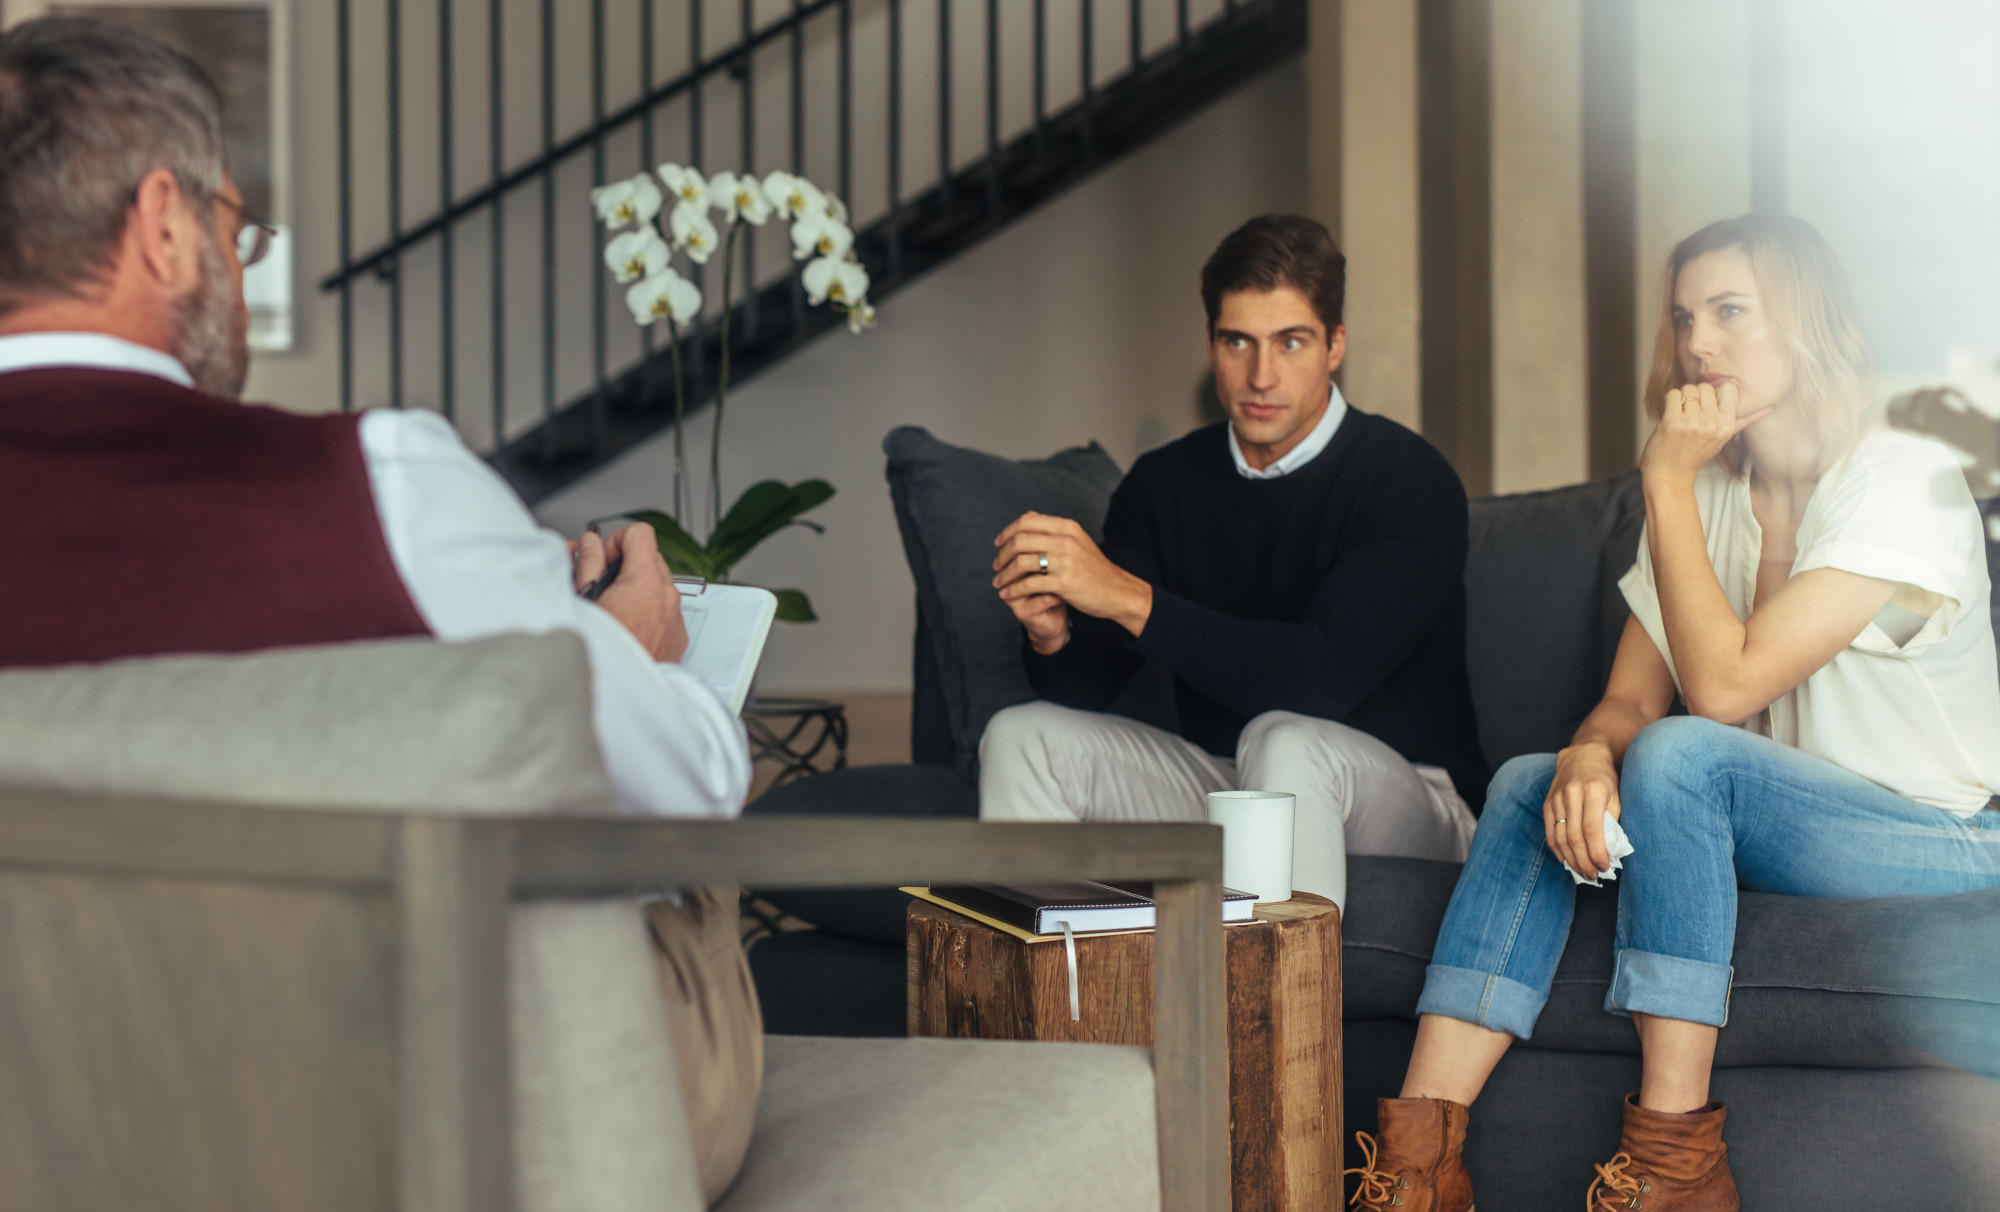 does marriage counseling work